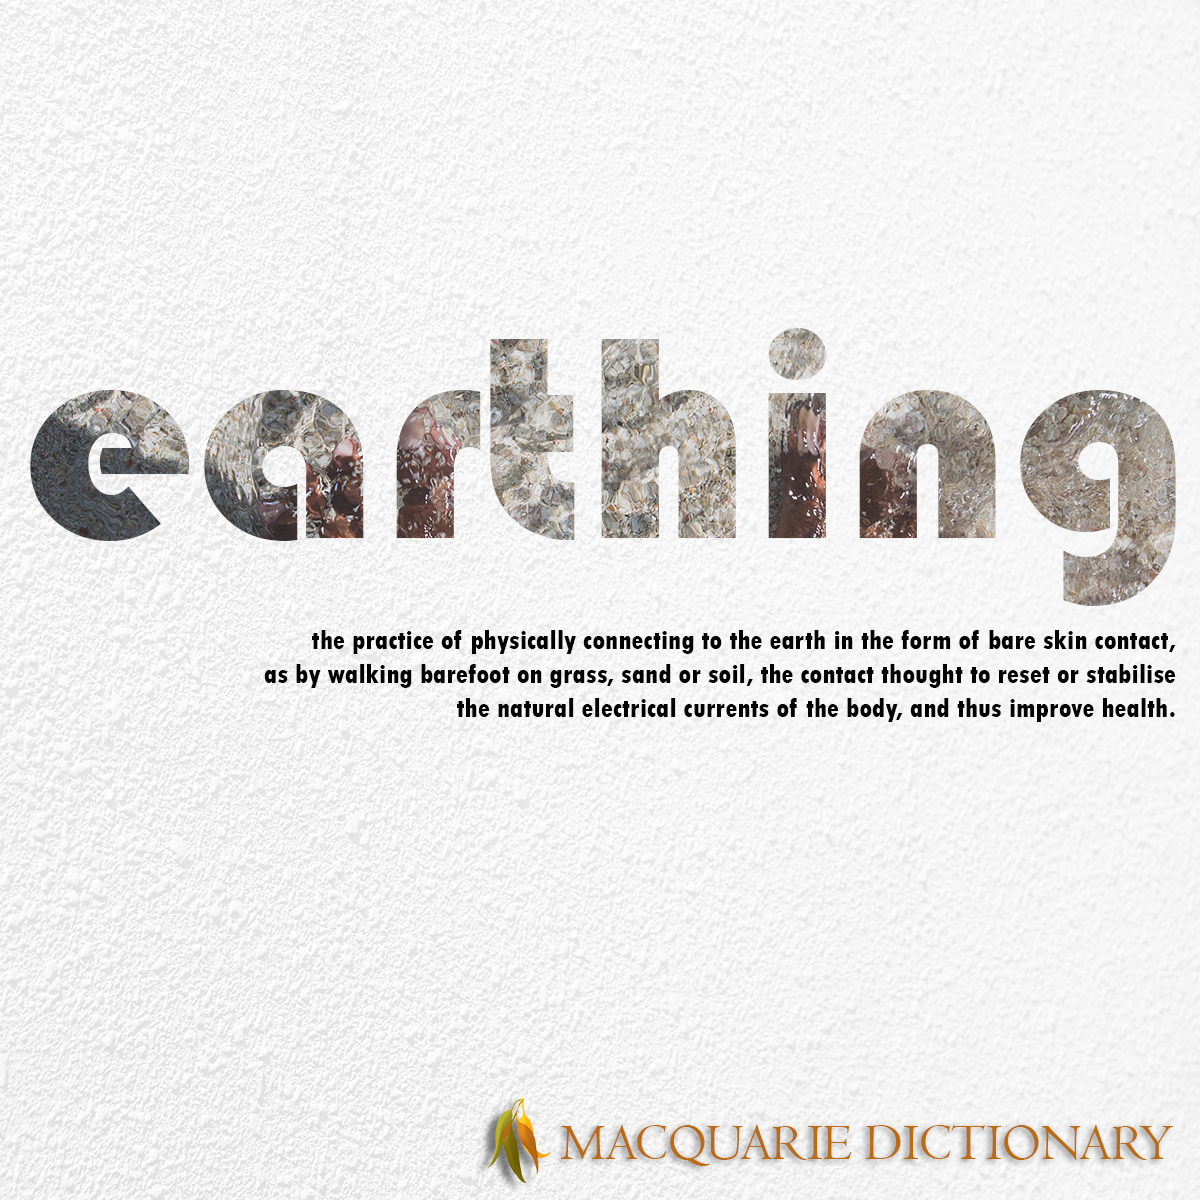 Image of Macquarie Dictionary Word of the Year - earthing - the practice of physically connecting to the earth in the form of bare skin contact, as by walking barefoot on grass, sand or soil, the contact thought to reset or stabilise the natural electrical currents of the body, and thus improve health.